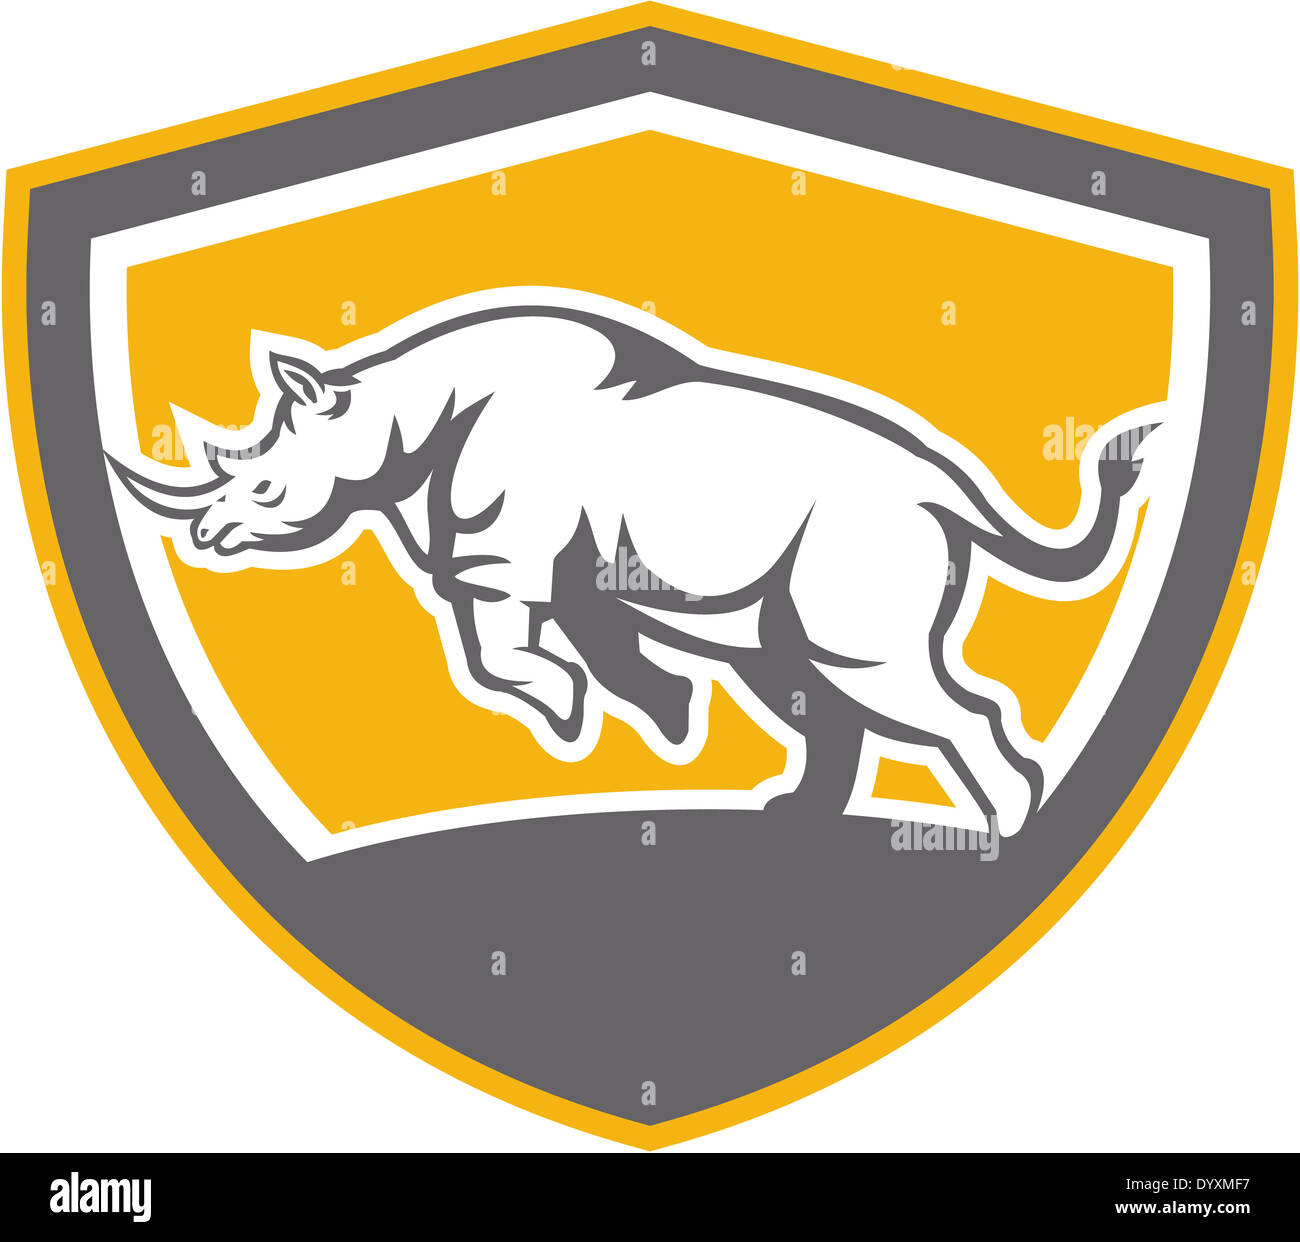 Illustration of a rhinoceros charging side view set inside shield crest shape on isolated background done in retro style. - Stock Image